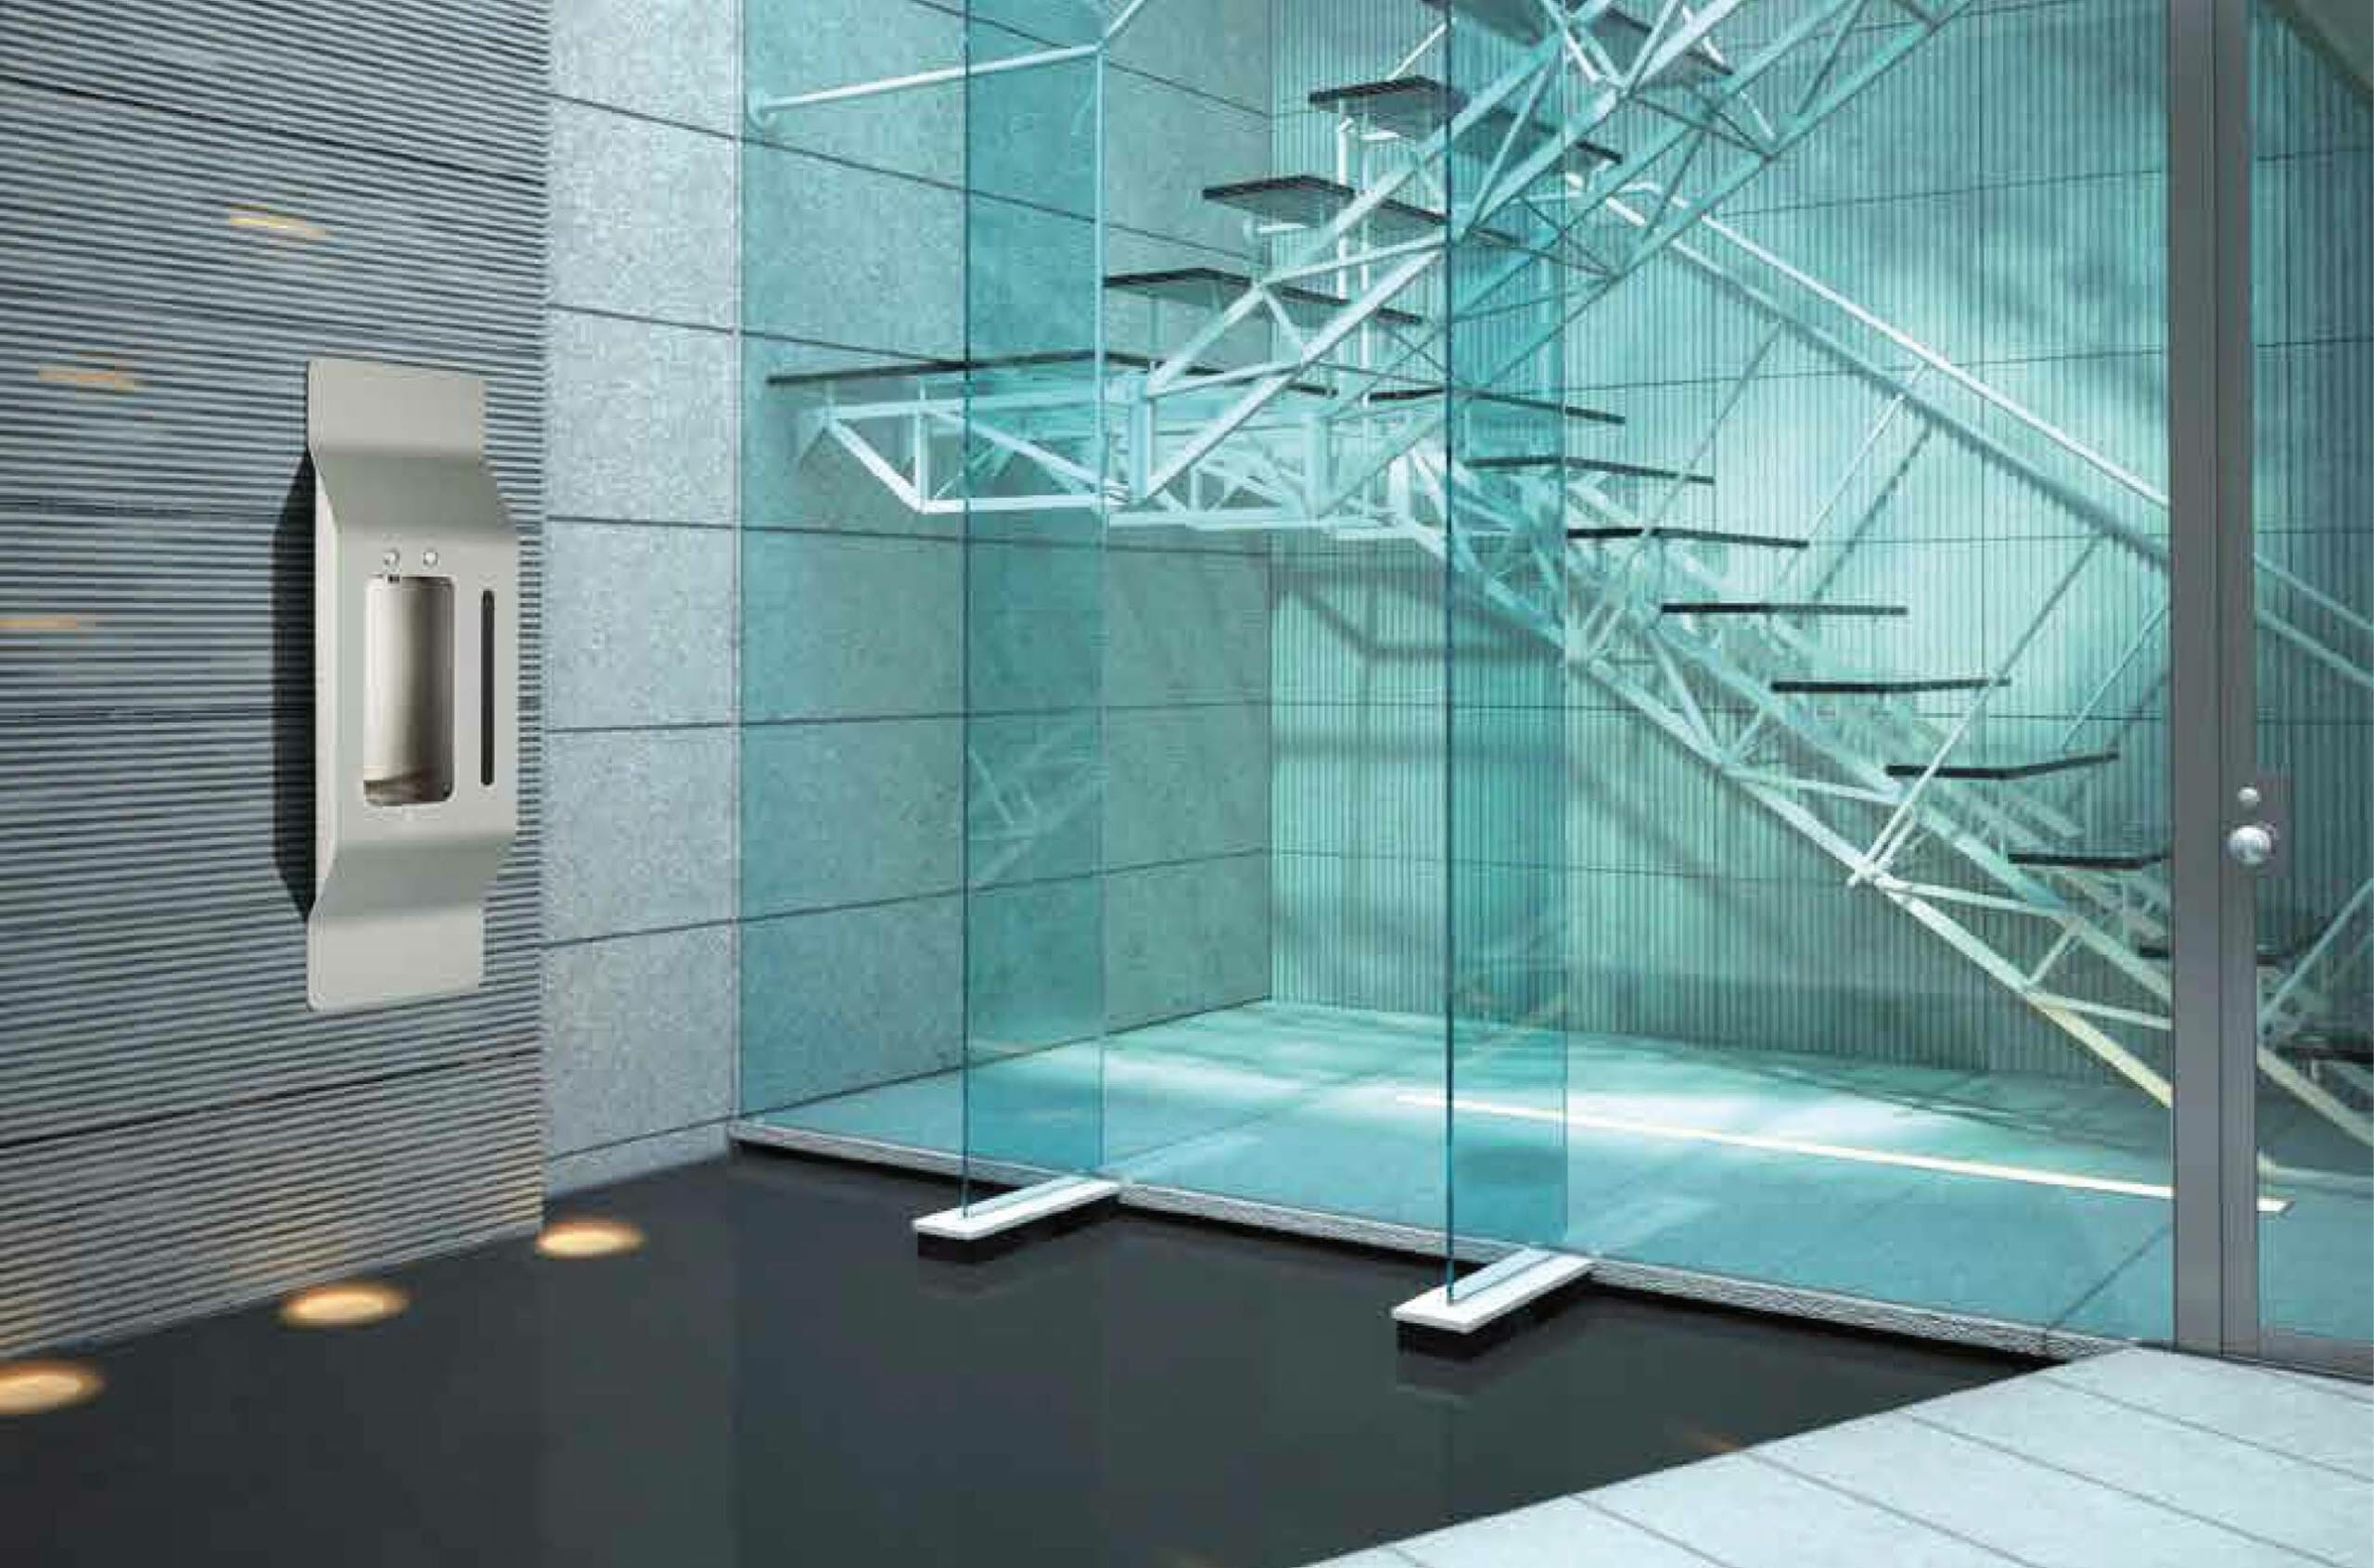 Rendering of a water system installed in a building.